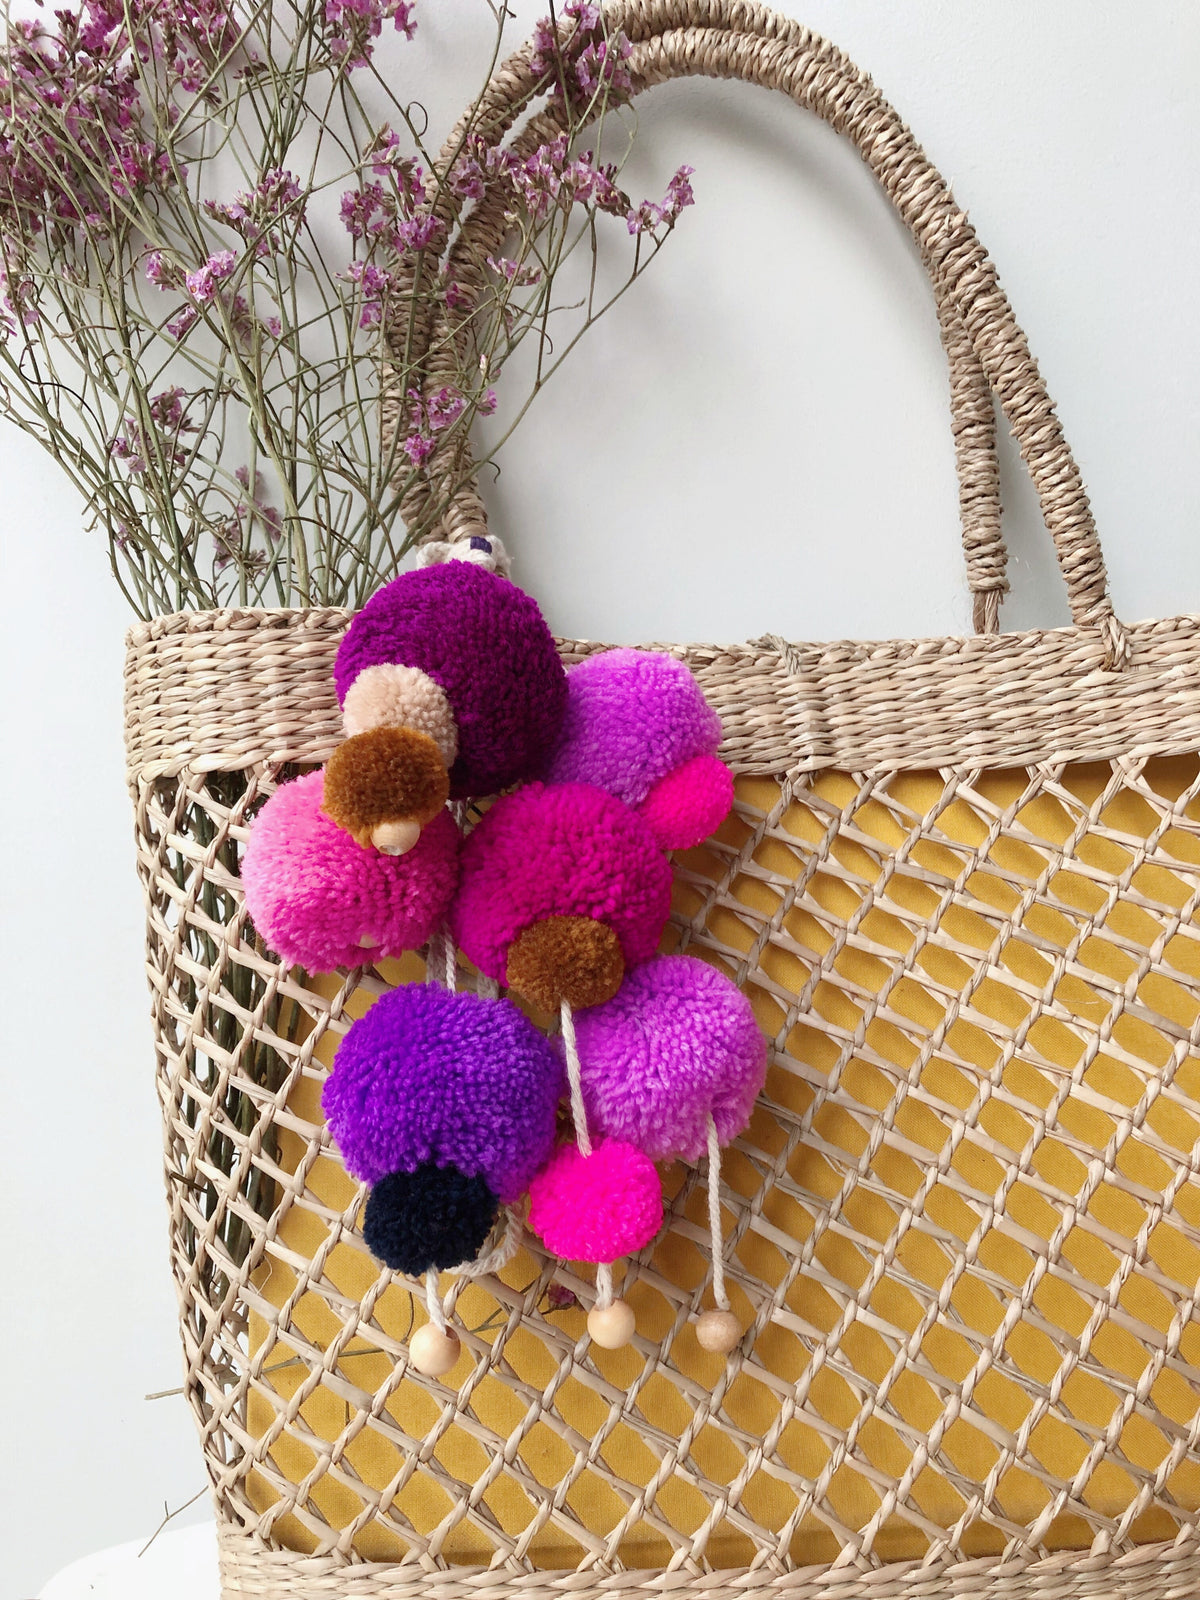 Crayola Multi Coloured Pom Pom Charm (Colour Combi: Pink & Purple Hues)